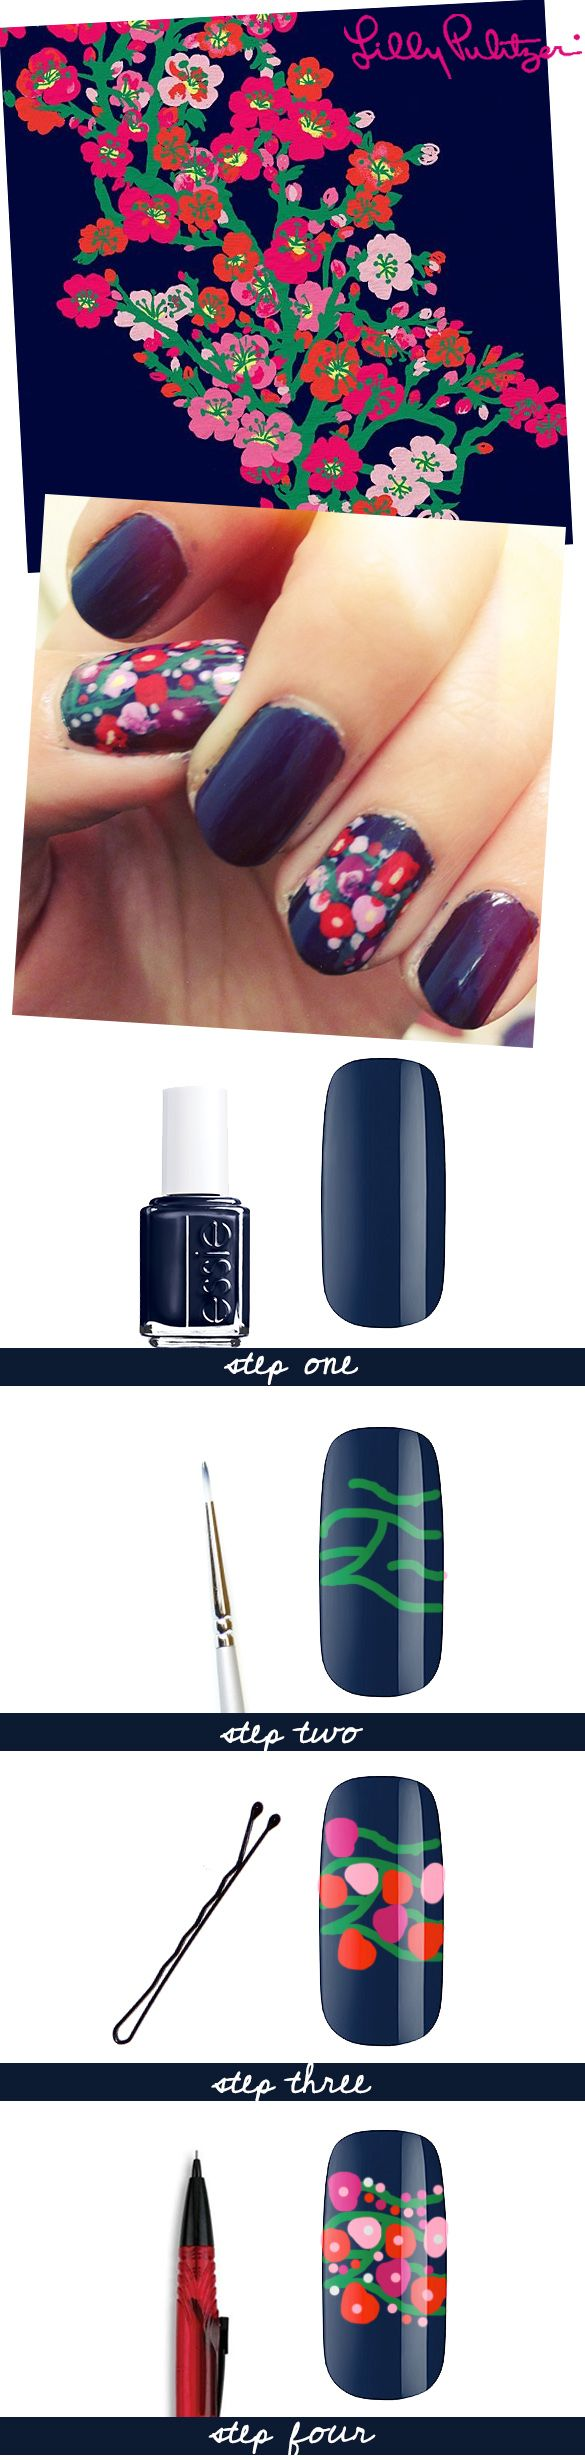 how to get lilly pulitzer inspired nail art! tutorial at thatgirlmag.com :)